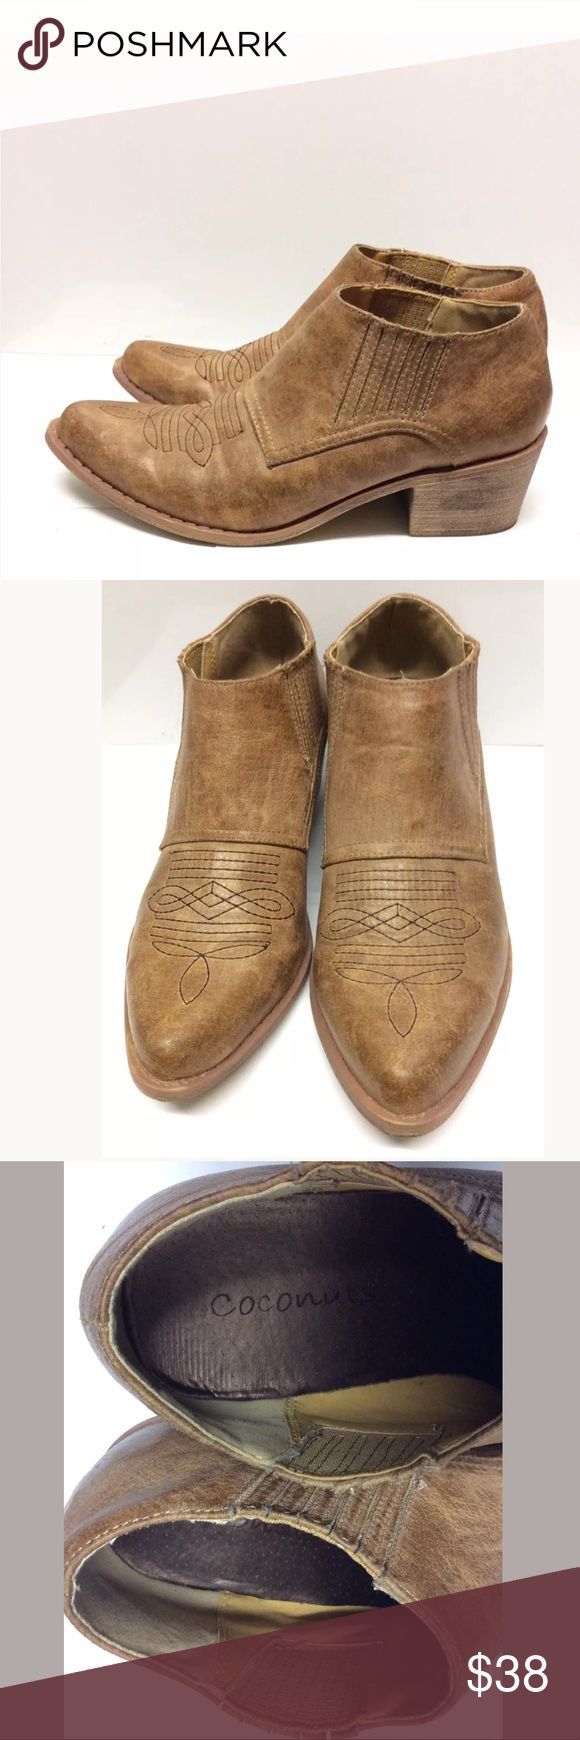 """♥️Coconuts Cowboy Ankle Boots Size 7.5 M Brown Coconuts Cowboy Ankle Boots  Size: 7.5 M Heel Height: 2"""" Color: Brown  The boots has cosmetic flaws with two small pinkish light spots. Overall, the shoes are gently used and in good condition. Thank you for viewing this listing! Coconuts Shoes Ankle Boots & Booties"""